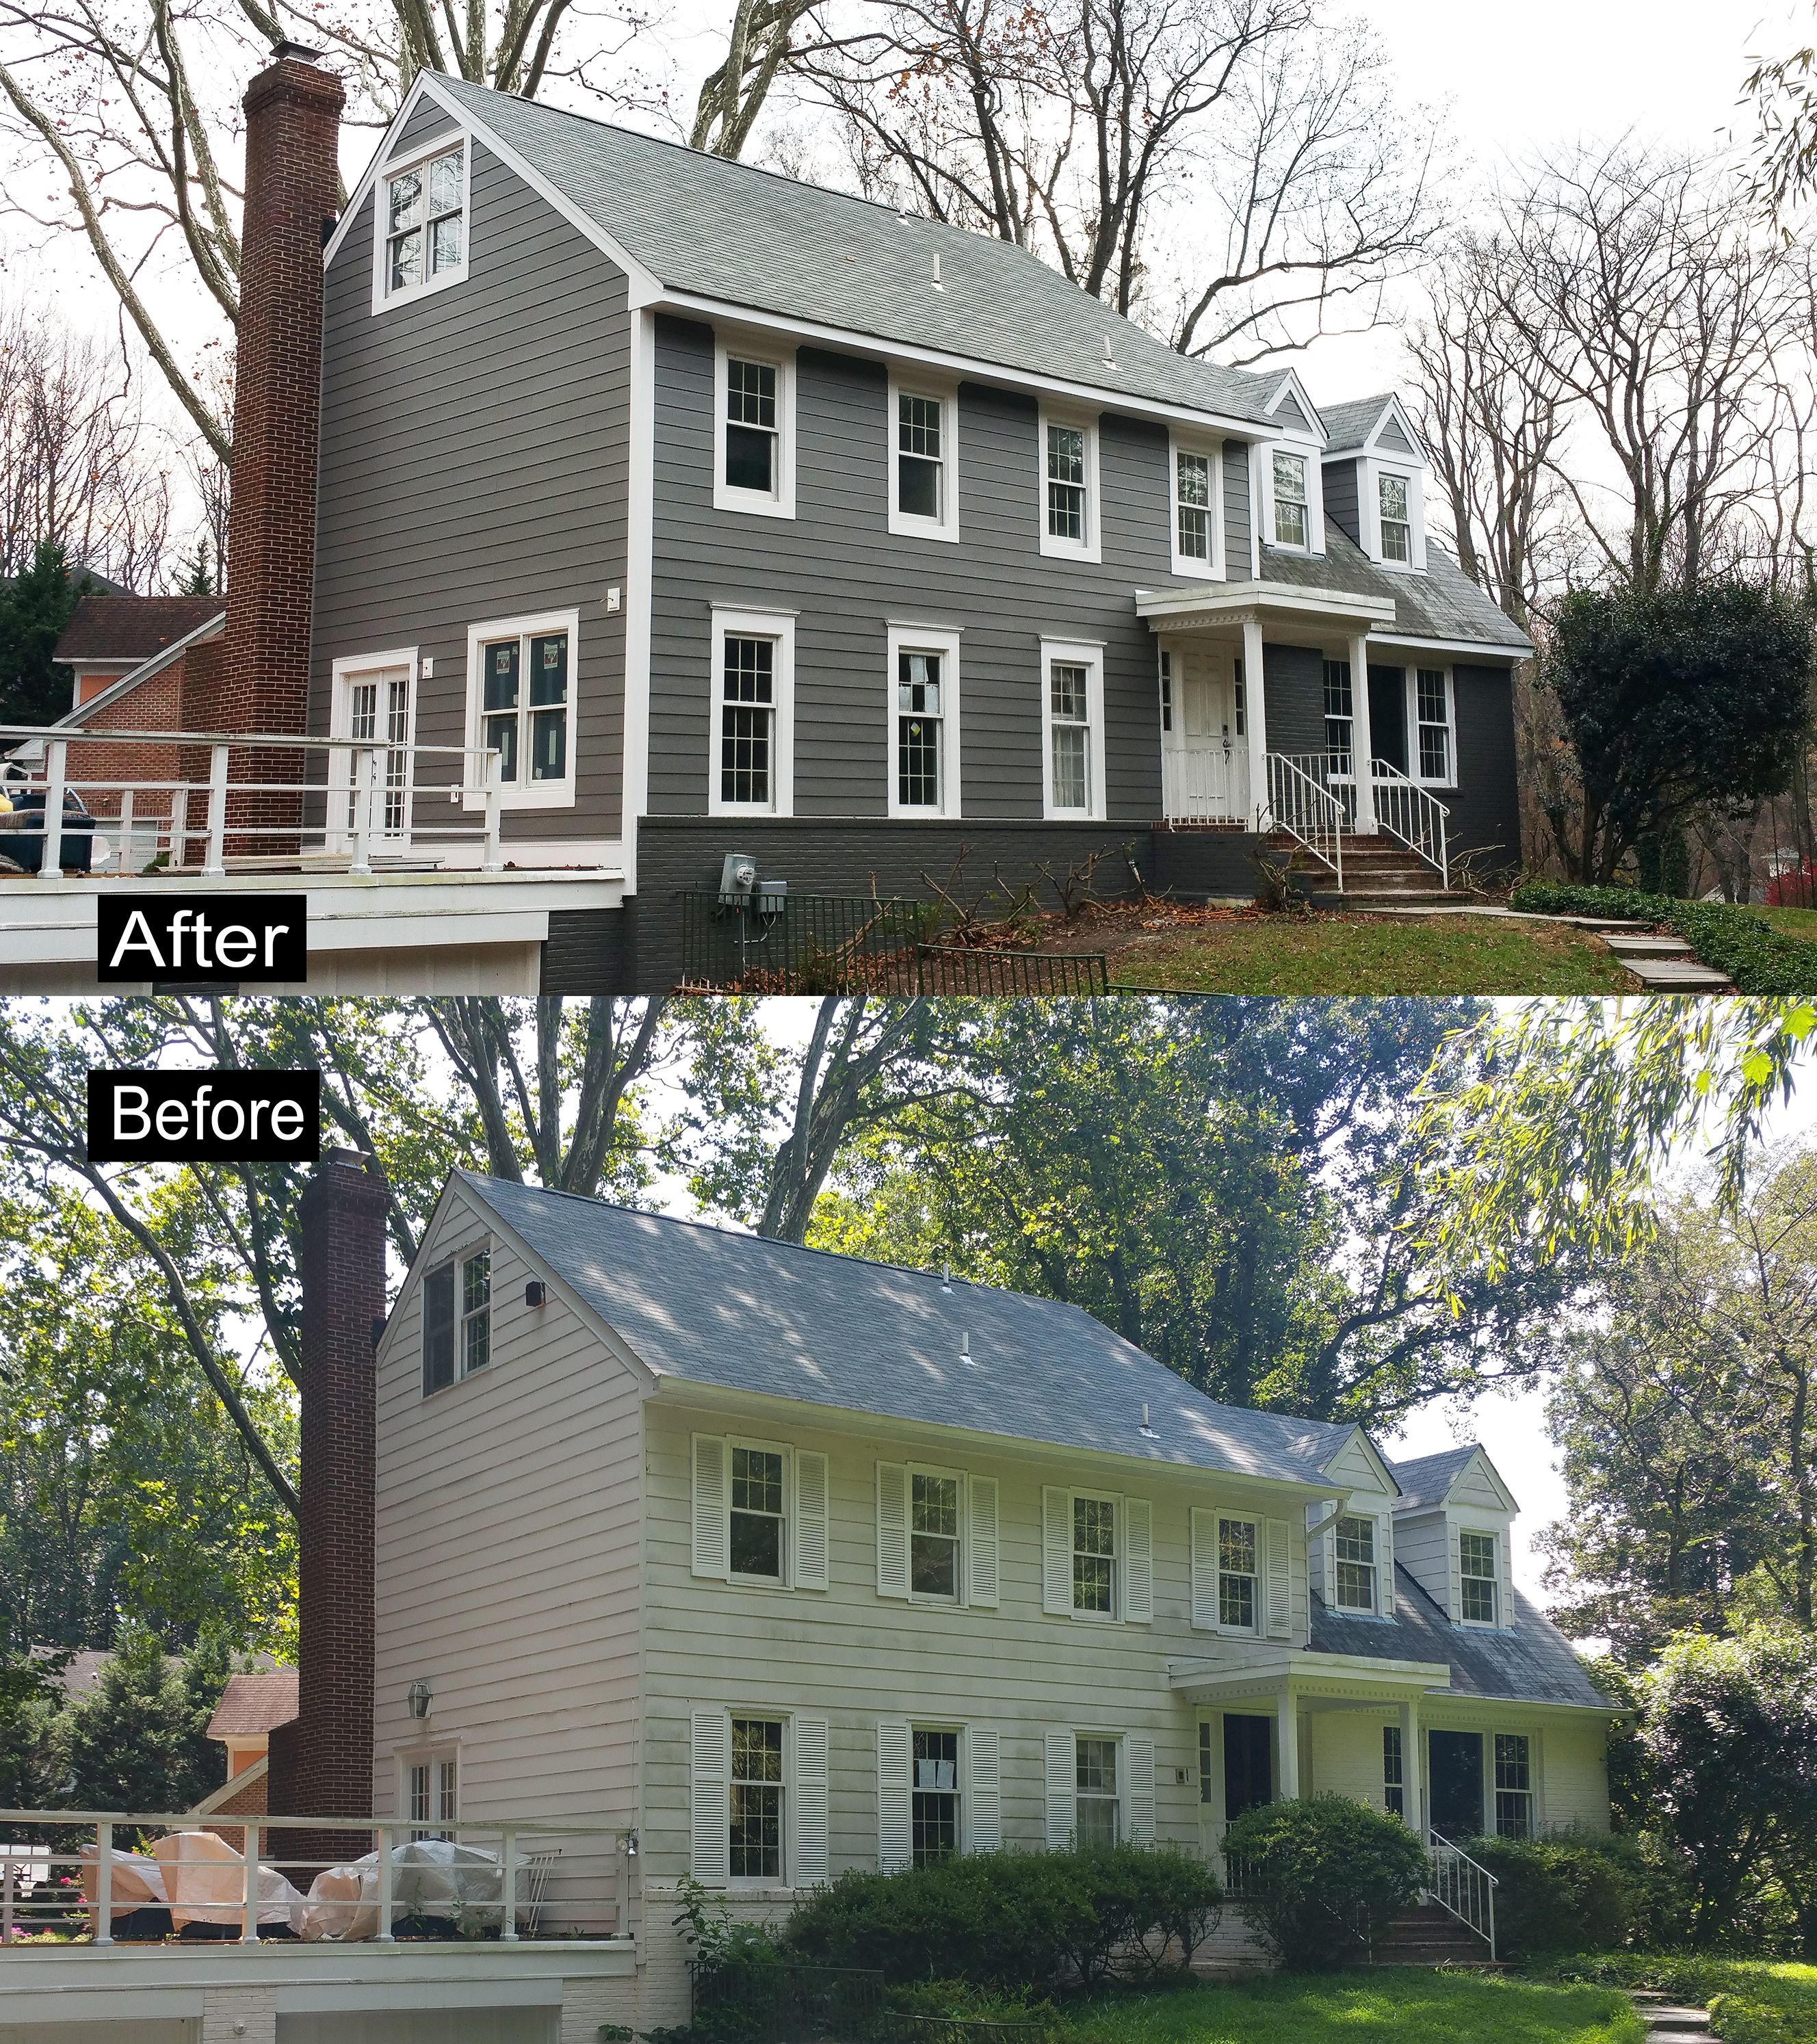 Work Closely With Customer On This James Hardie Hardieplank Siding Project We Install Dupont